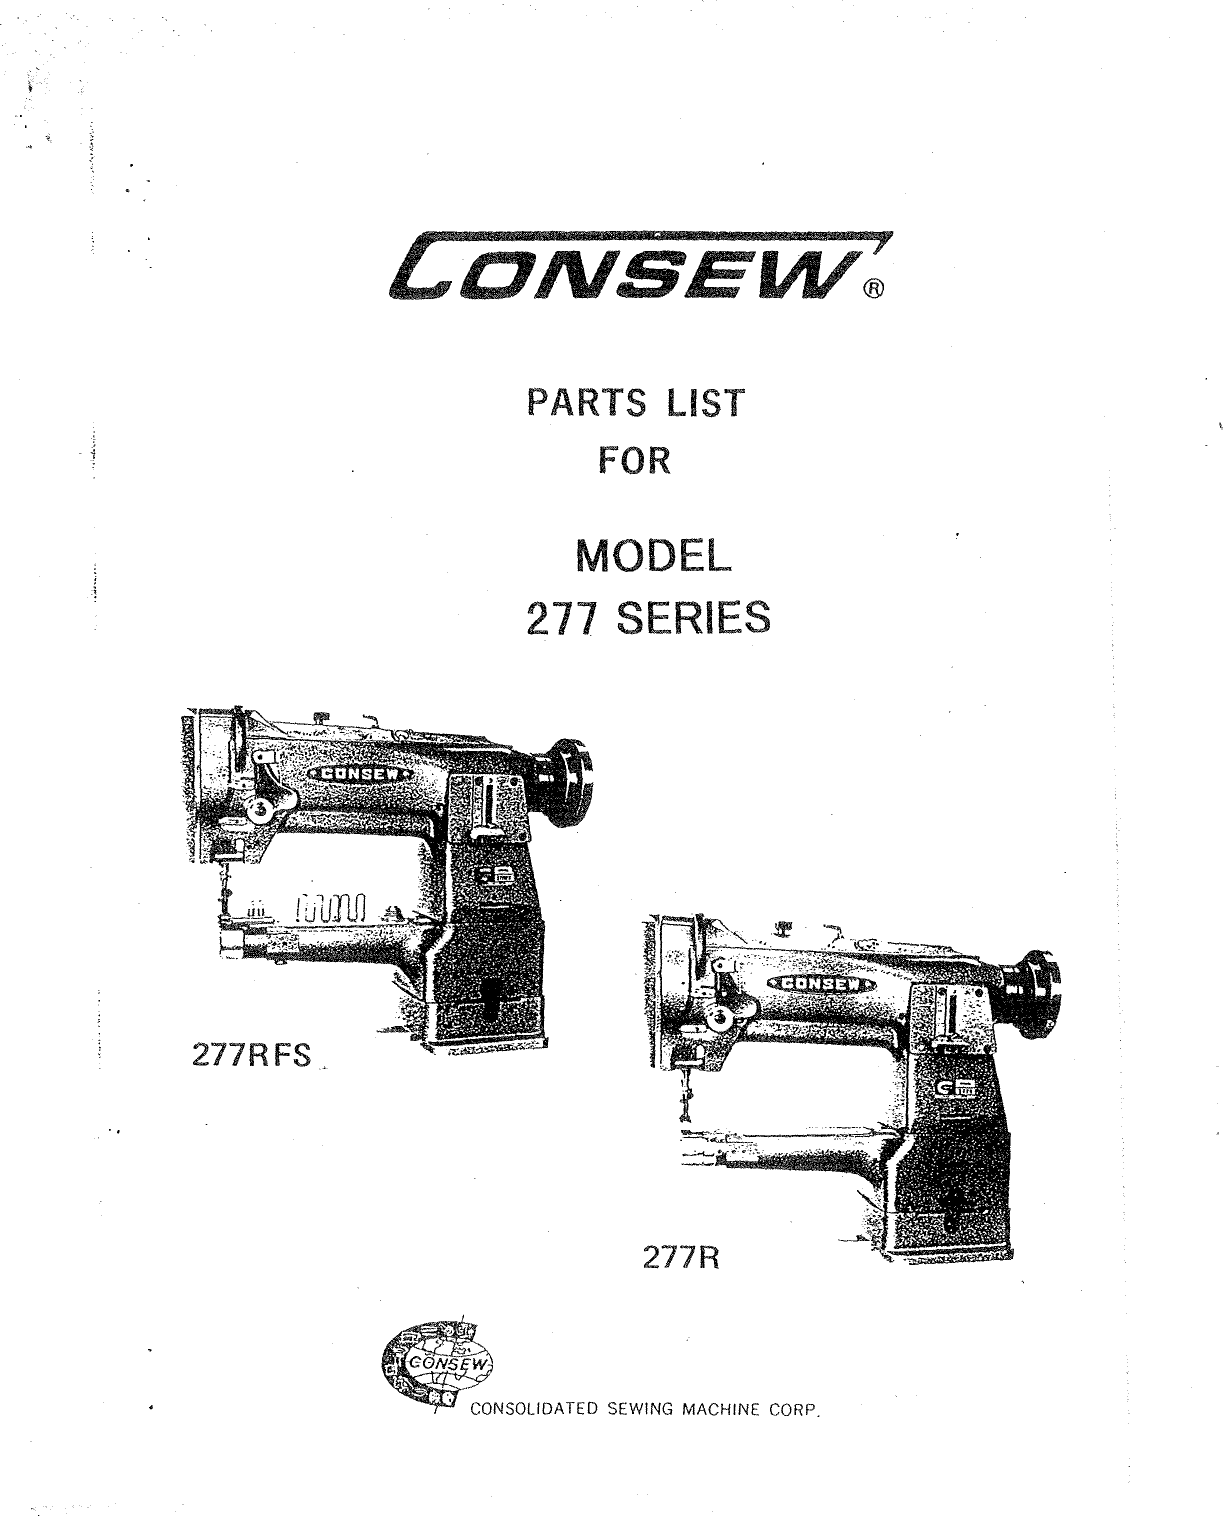 ACE&EASTMAN Consew 277R Parts Book User Manual